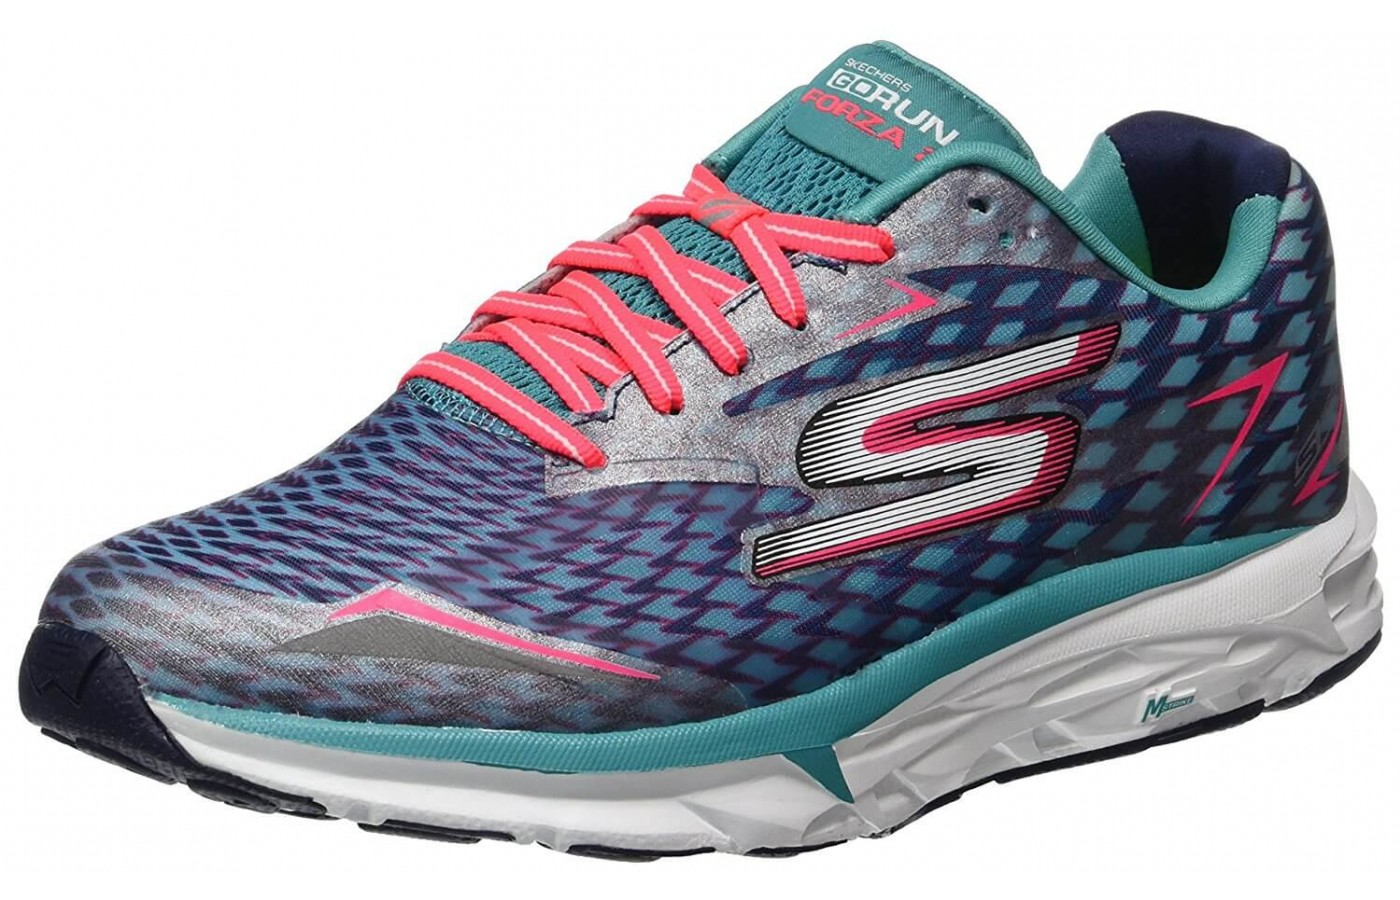 The Skechers GoRUN Forza 2 features an M-Strike midfoot rocker design